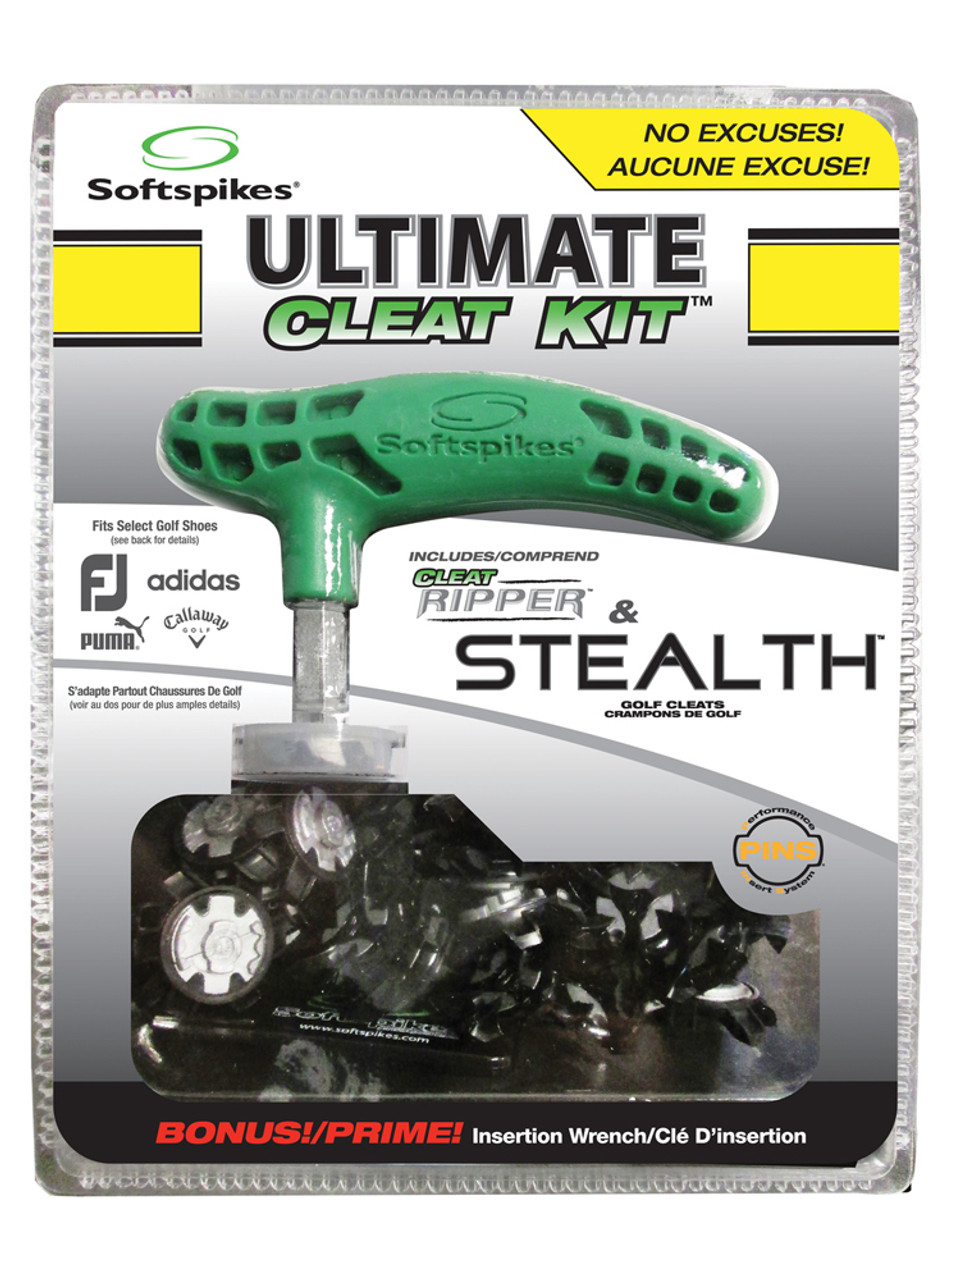 88792eda9 SoftSpikes Stealth Ultimate Cleat Kit Pins For Sale